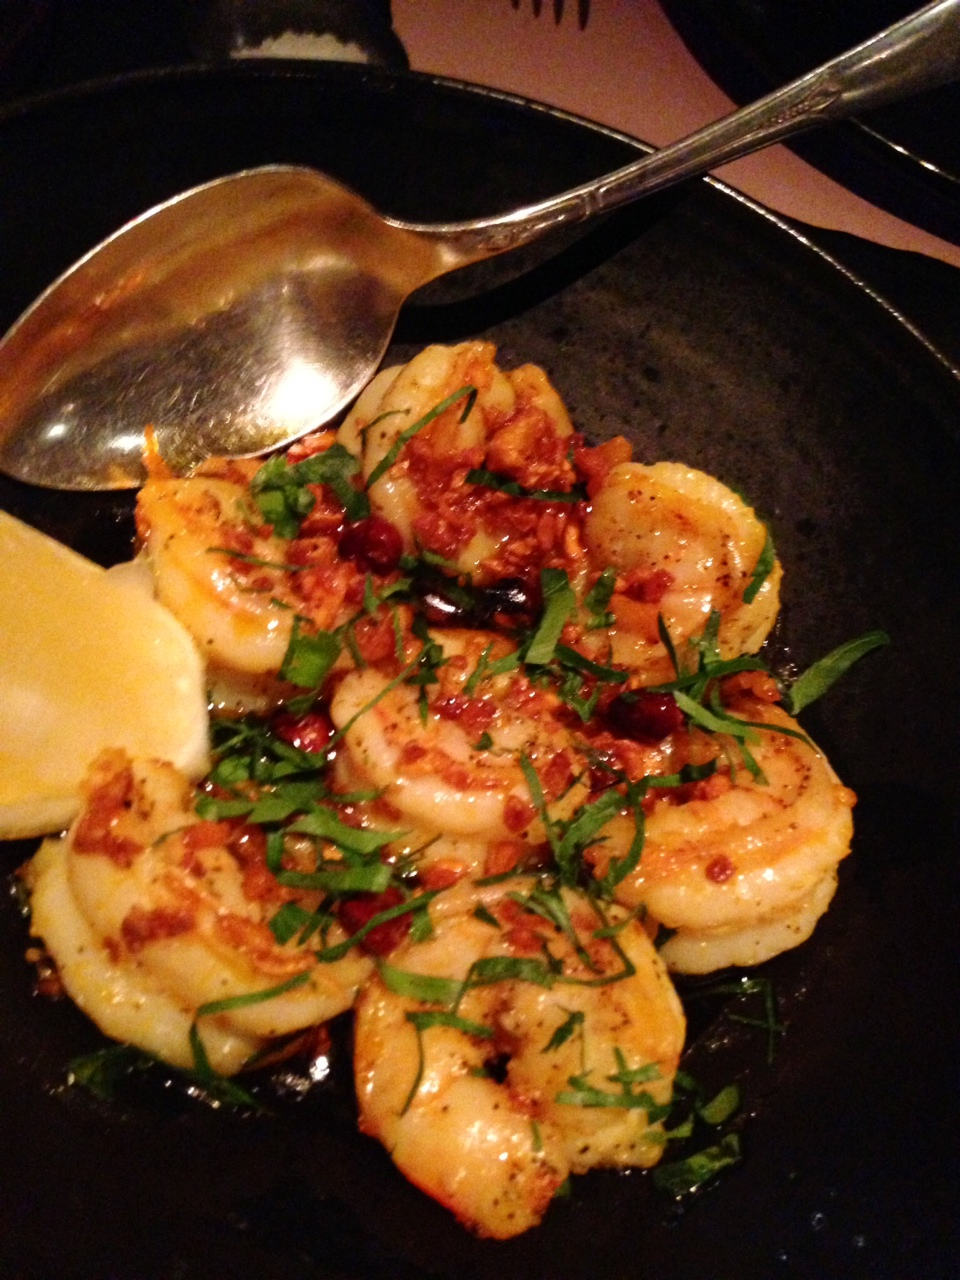 Our three foodies love these crispy shrimp with nutty bits of garlic and chili oil.